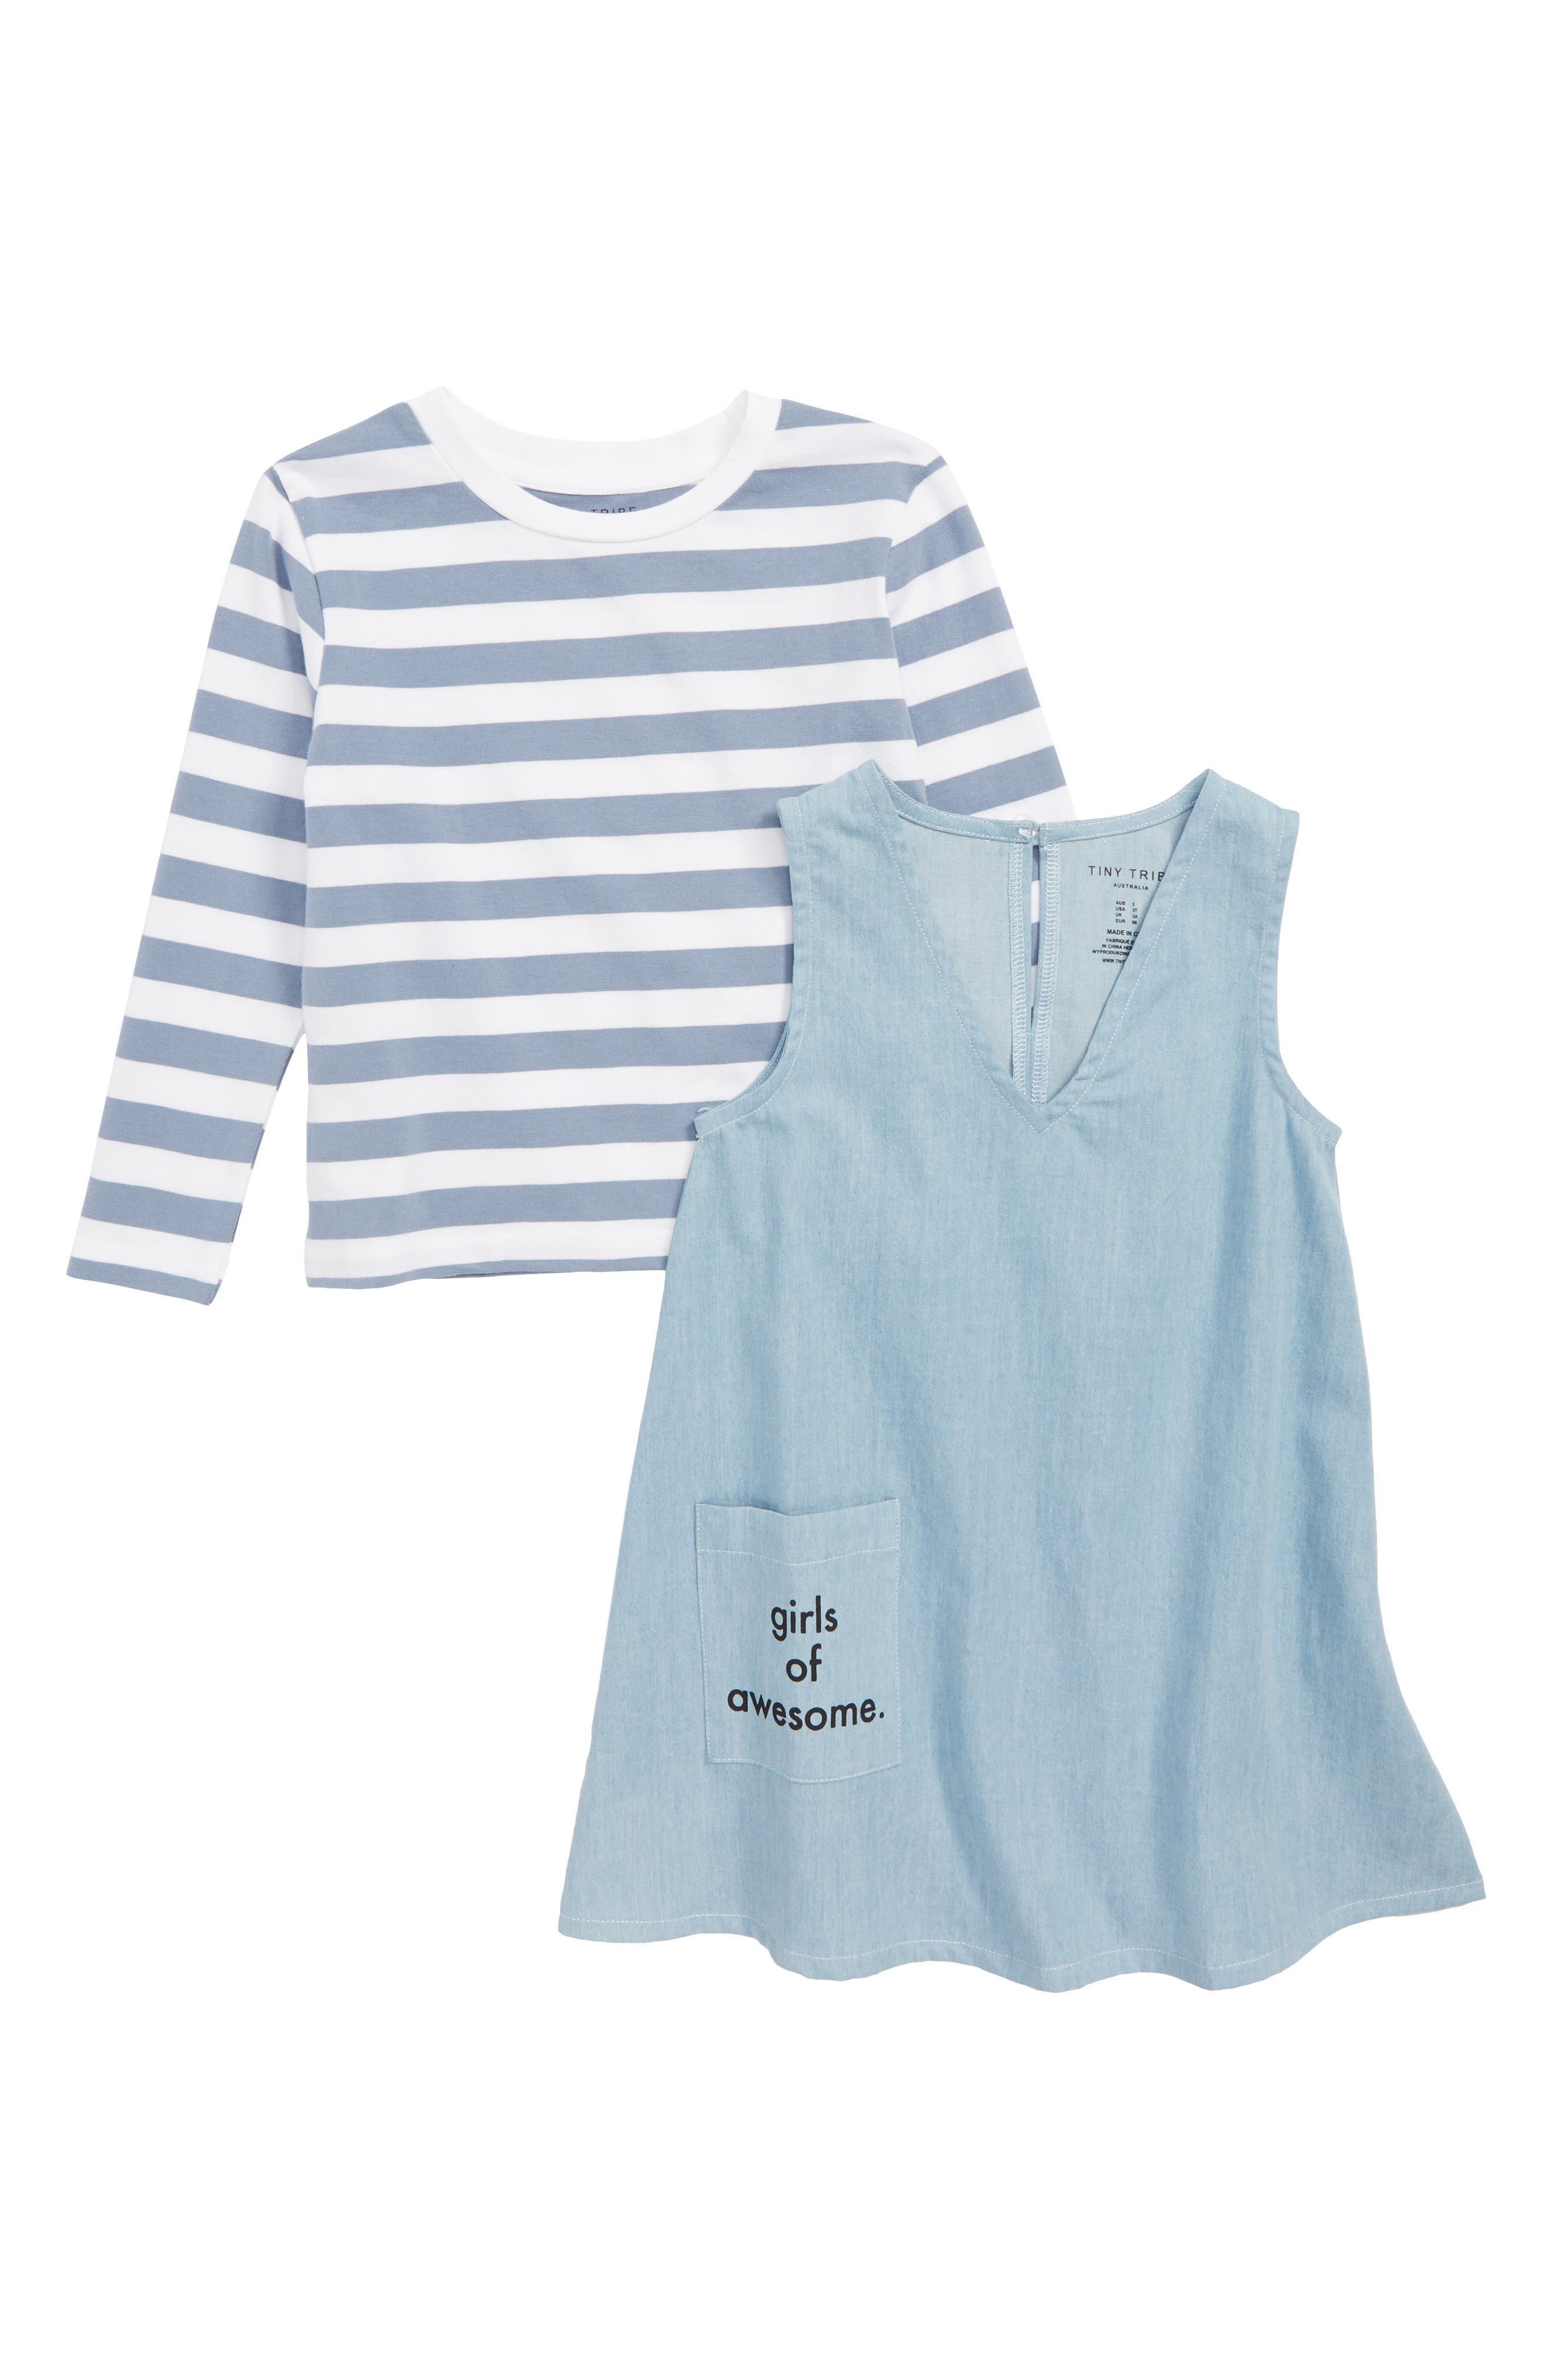 Girls of Awesome Tee & Dress Set,                             Main thumbnail 1, color,                             BLUE / CHAMBRAY